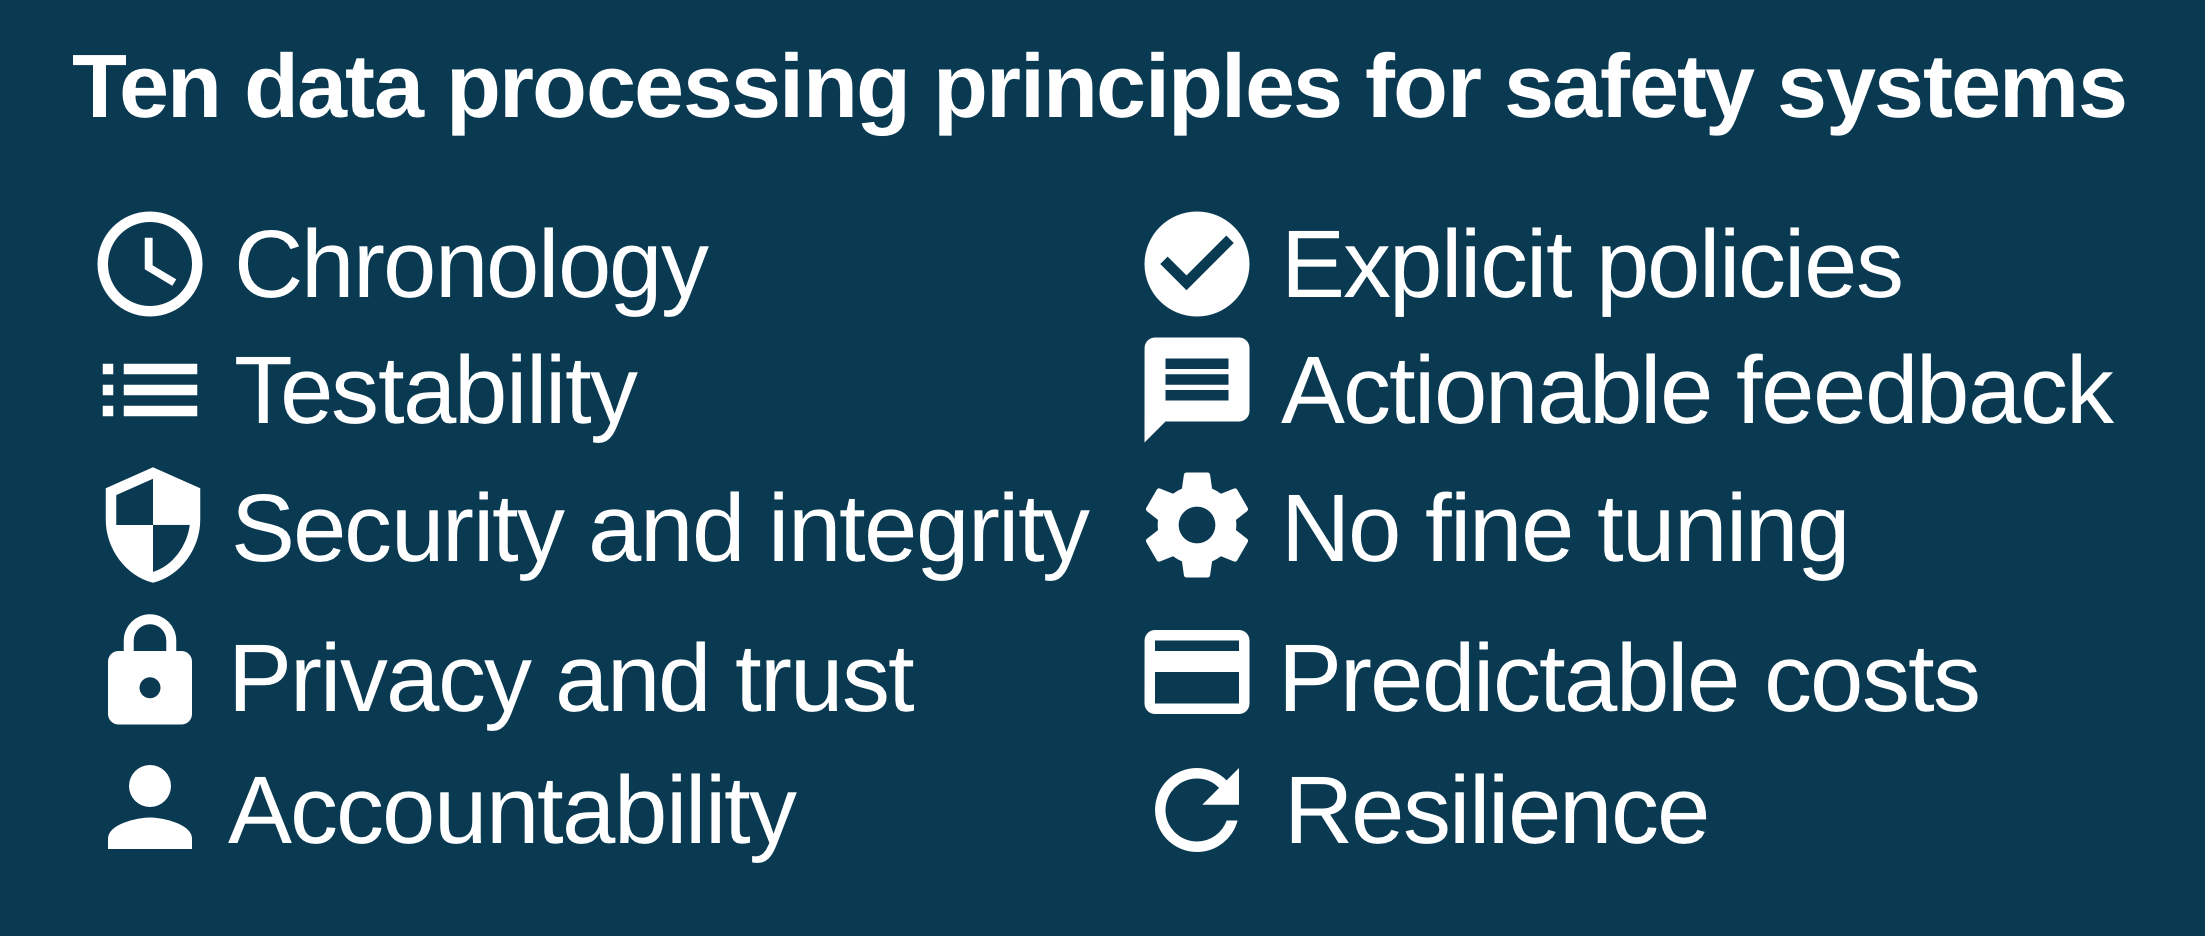 Ten data processing principles for safety systems